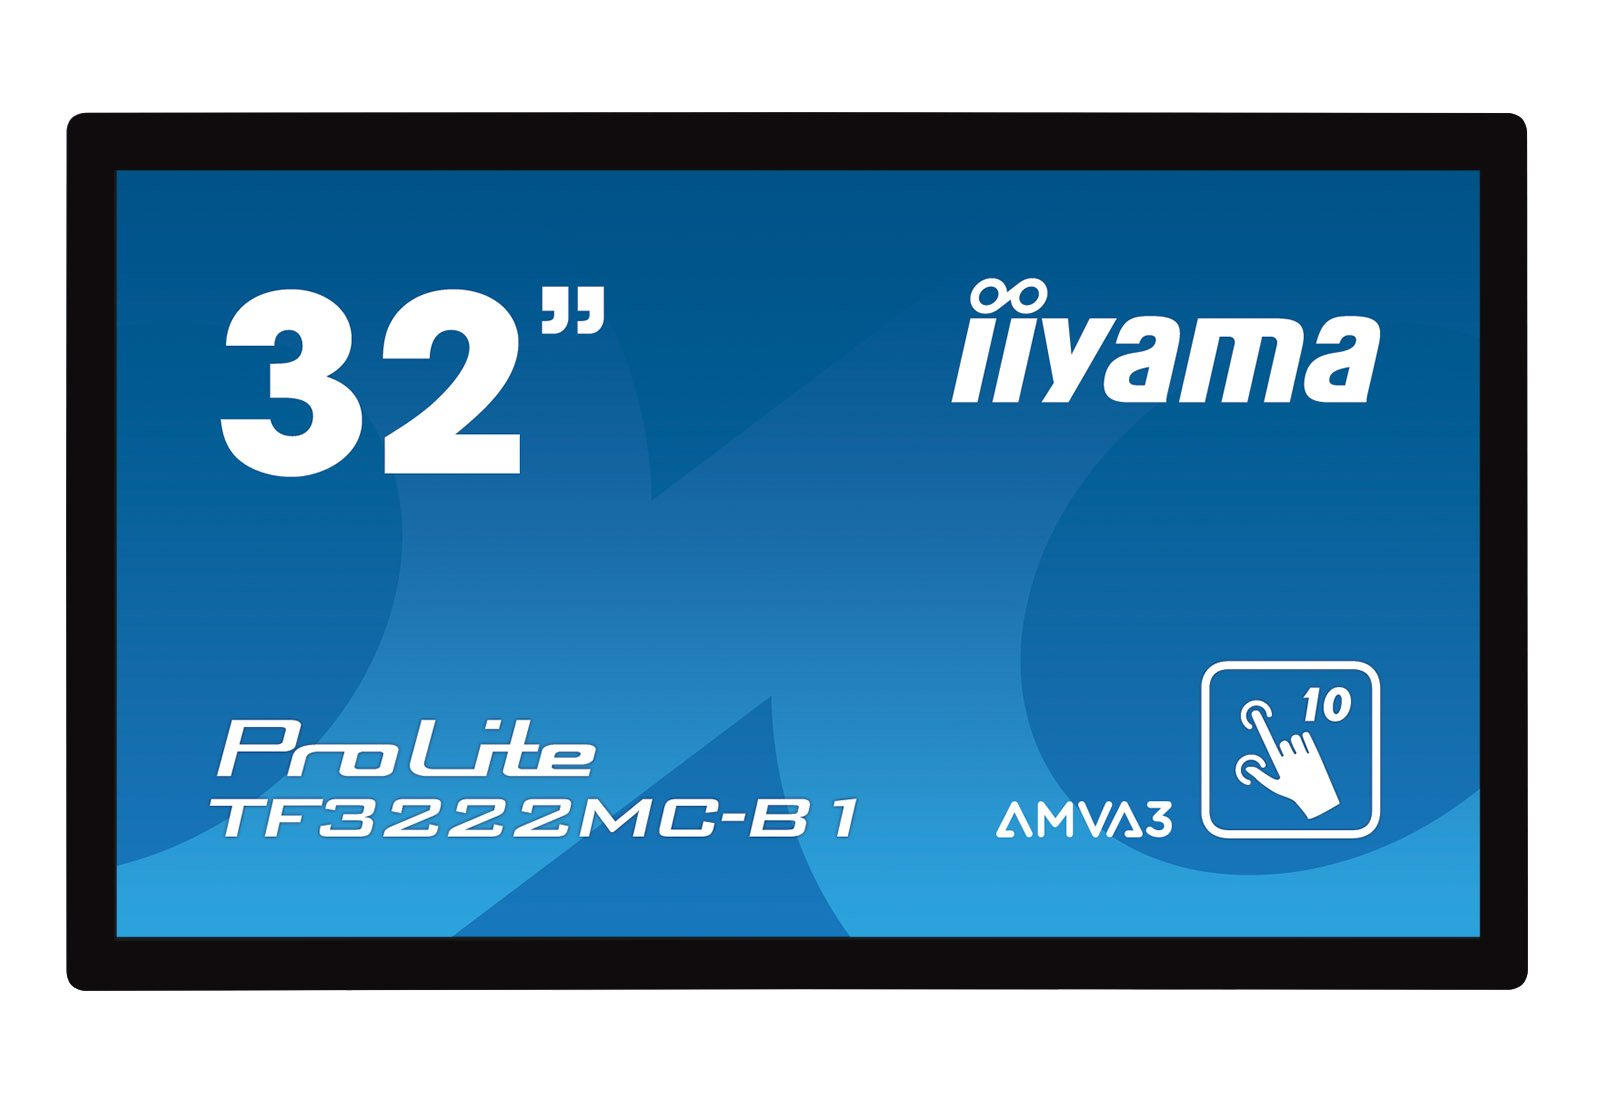 Iiyama 31,5 10 point Capactive Touch 1080p, 20/7, 425nits, TF3222MC-B1 (1080p, 20/7, 425nits AMVA3 panel 1920x1080, Scratch resistance, Open frame, Palm Rejection, IP54) by iiyama